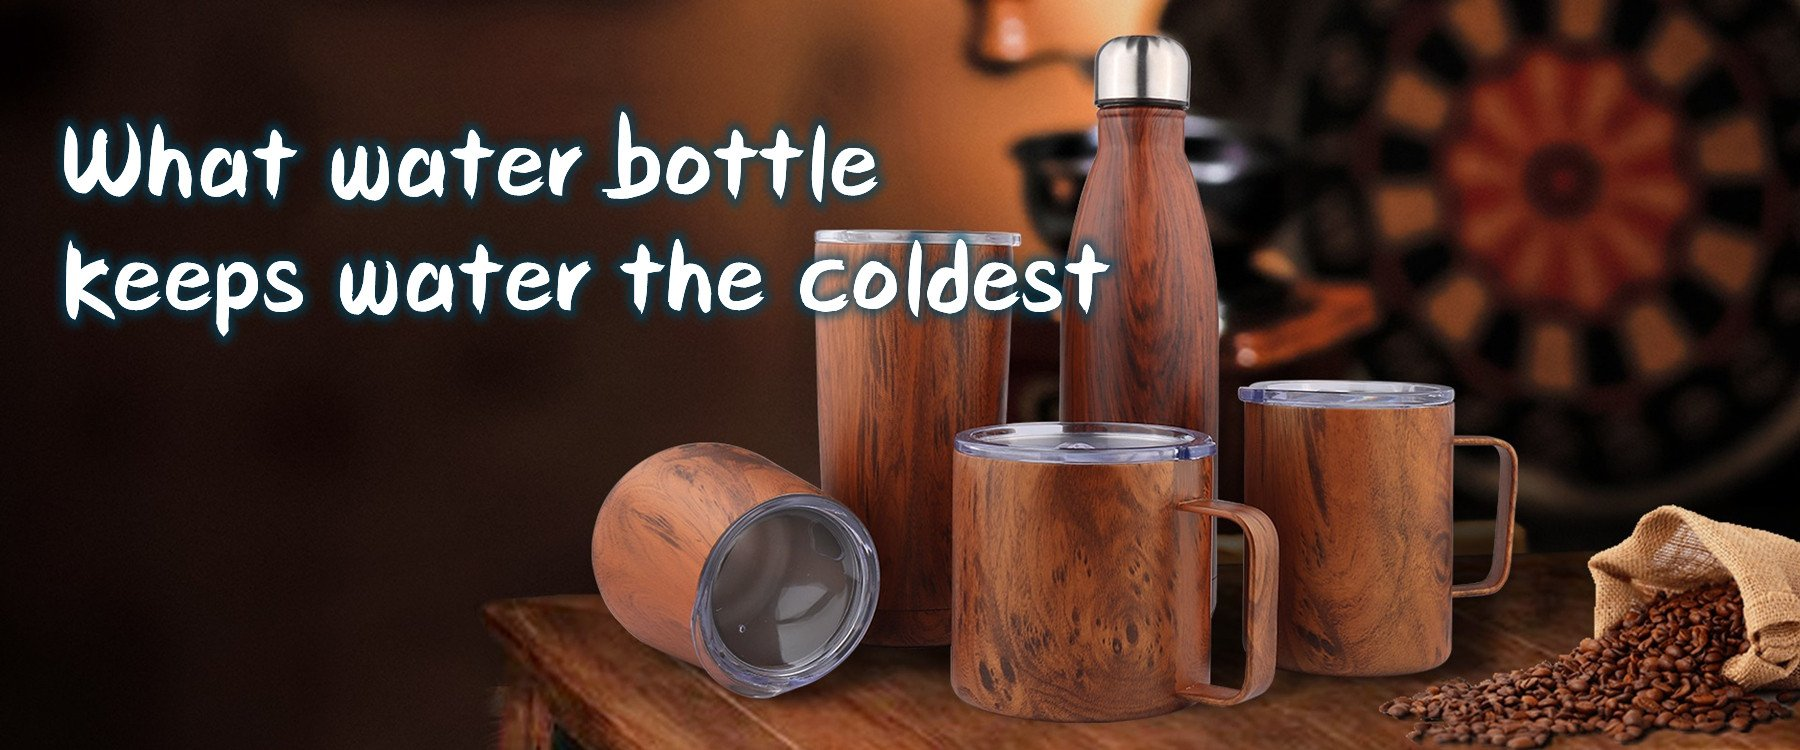 what water bottle keeps water the coldest